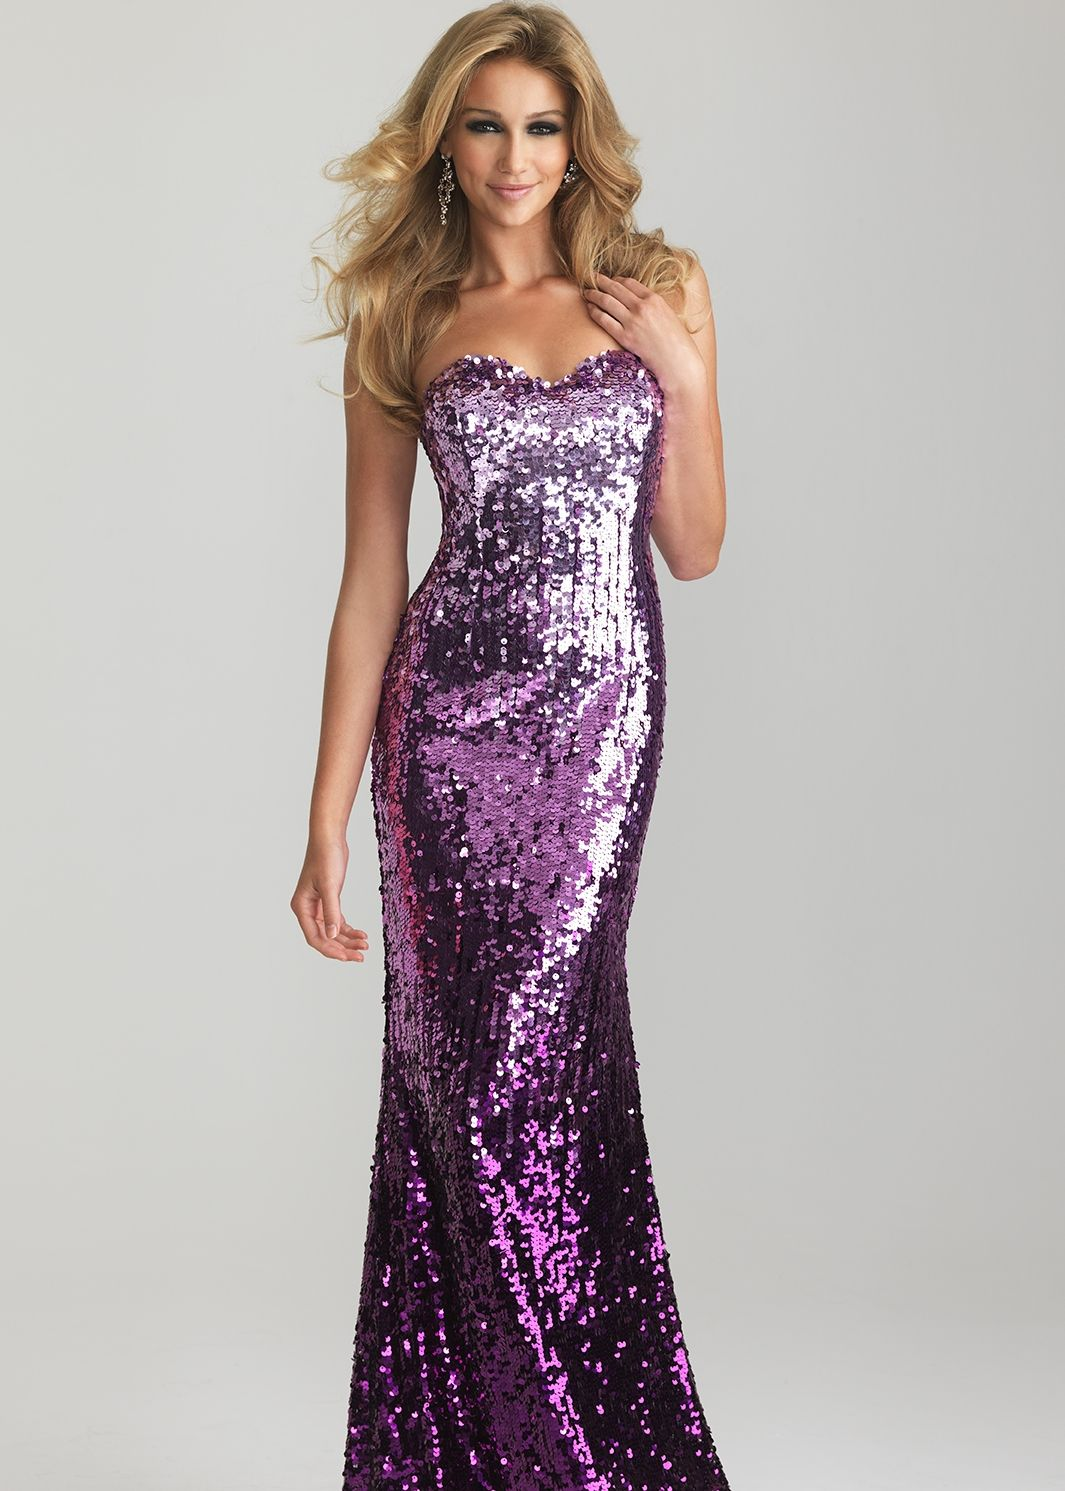 Sparkly Sequin Purple Ombre Gown - Night Moves Prom Dresses 6627 ...